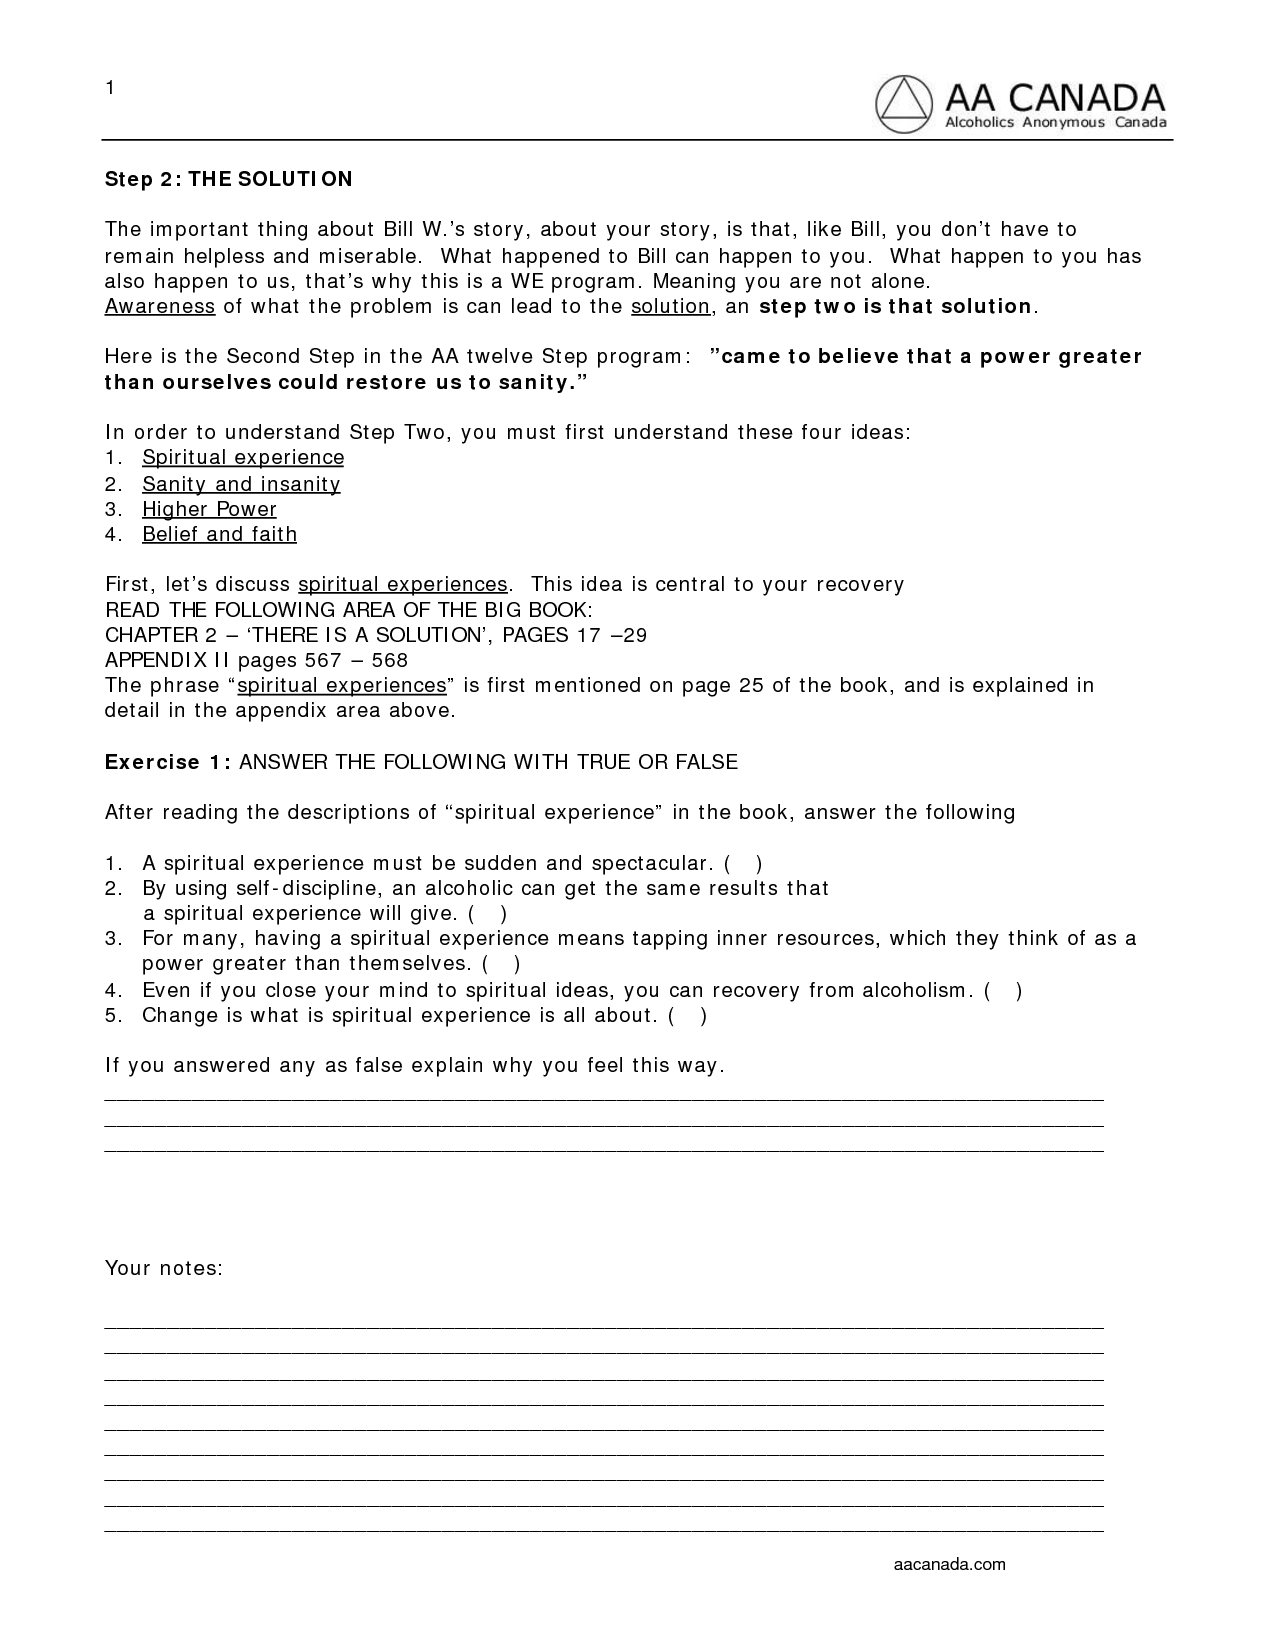 19 Best Images Of Mental Health Worksheets